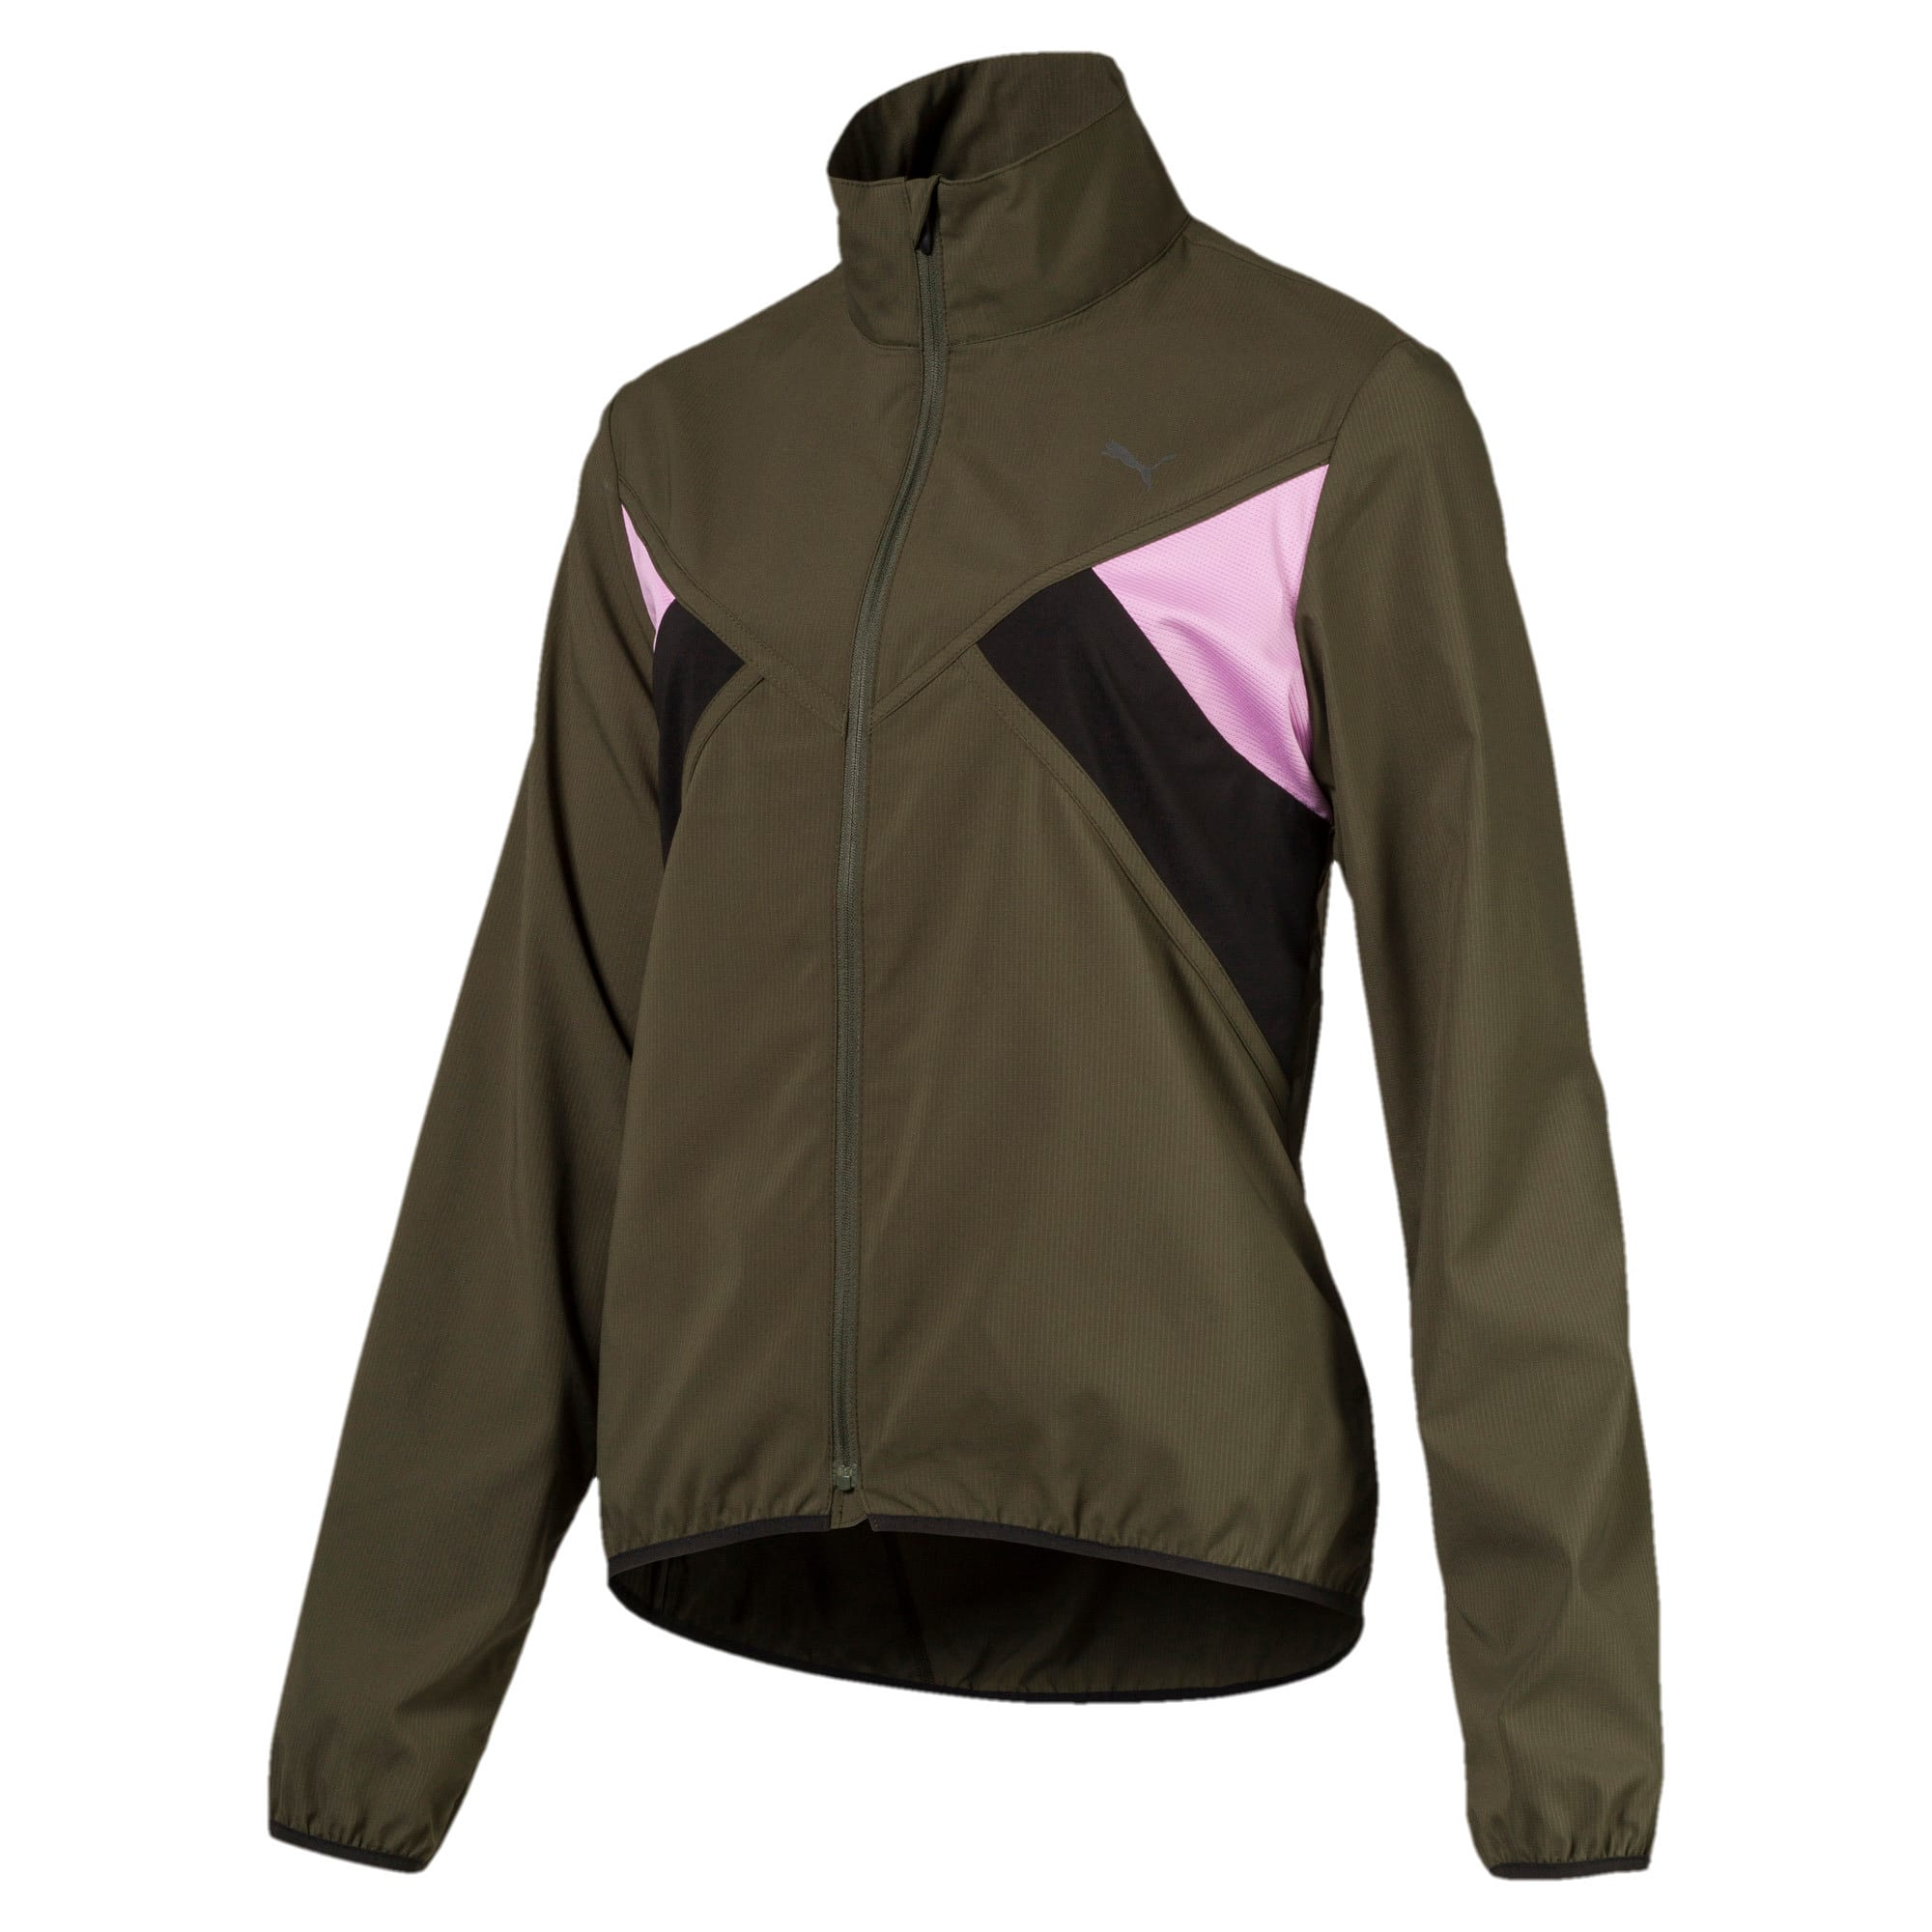 Thumbnail 3 of IGNITE Zip-Up Women's Running Wind Jacket, Forest Night-Black-Orchid, medium-IND